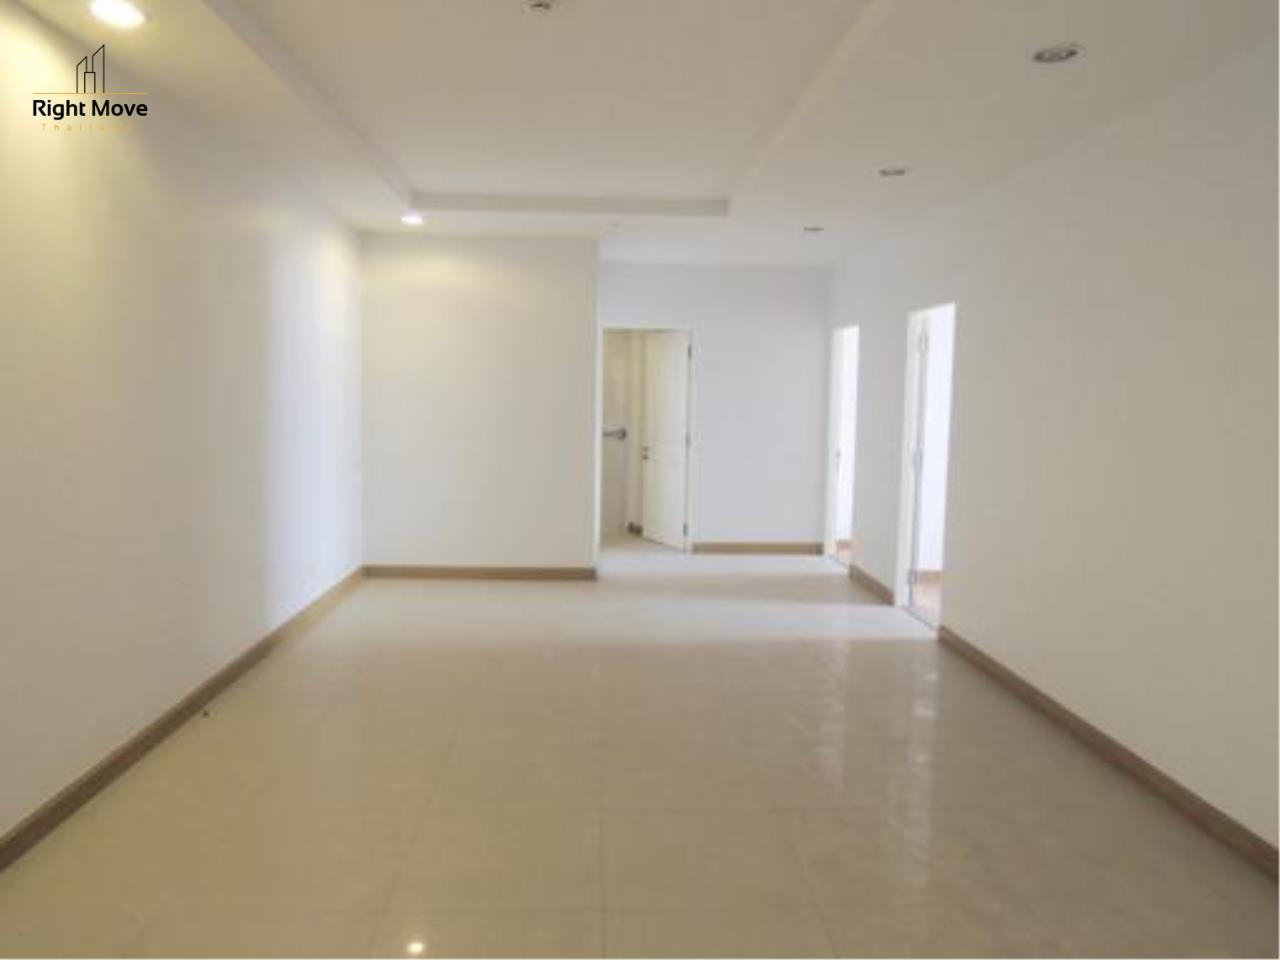 Right Move Thailand Agency's CS1818 The Rise Penthouse For Sale 27,500,000 THB 4 Bedrooms 297.47 Sqm 1